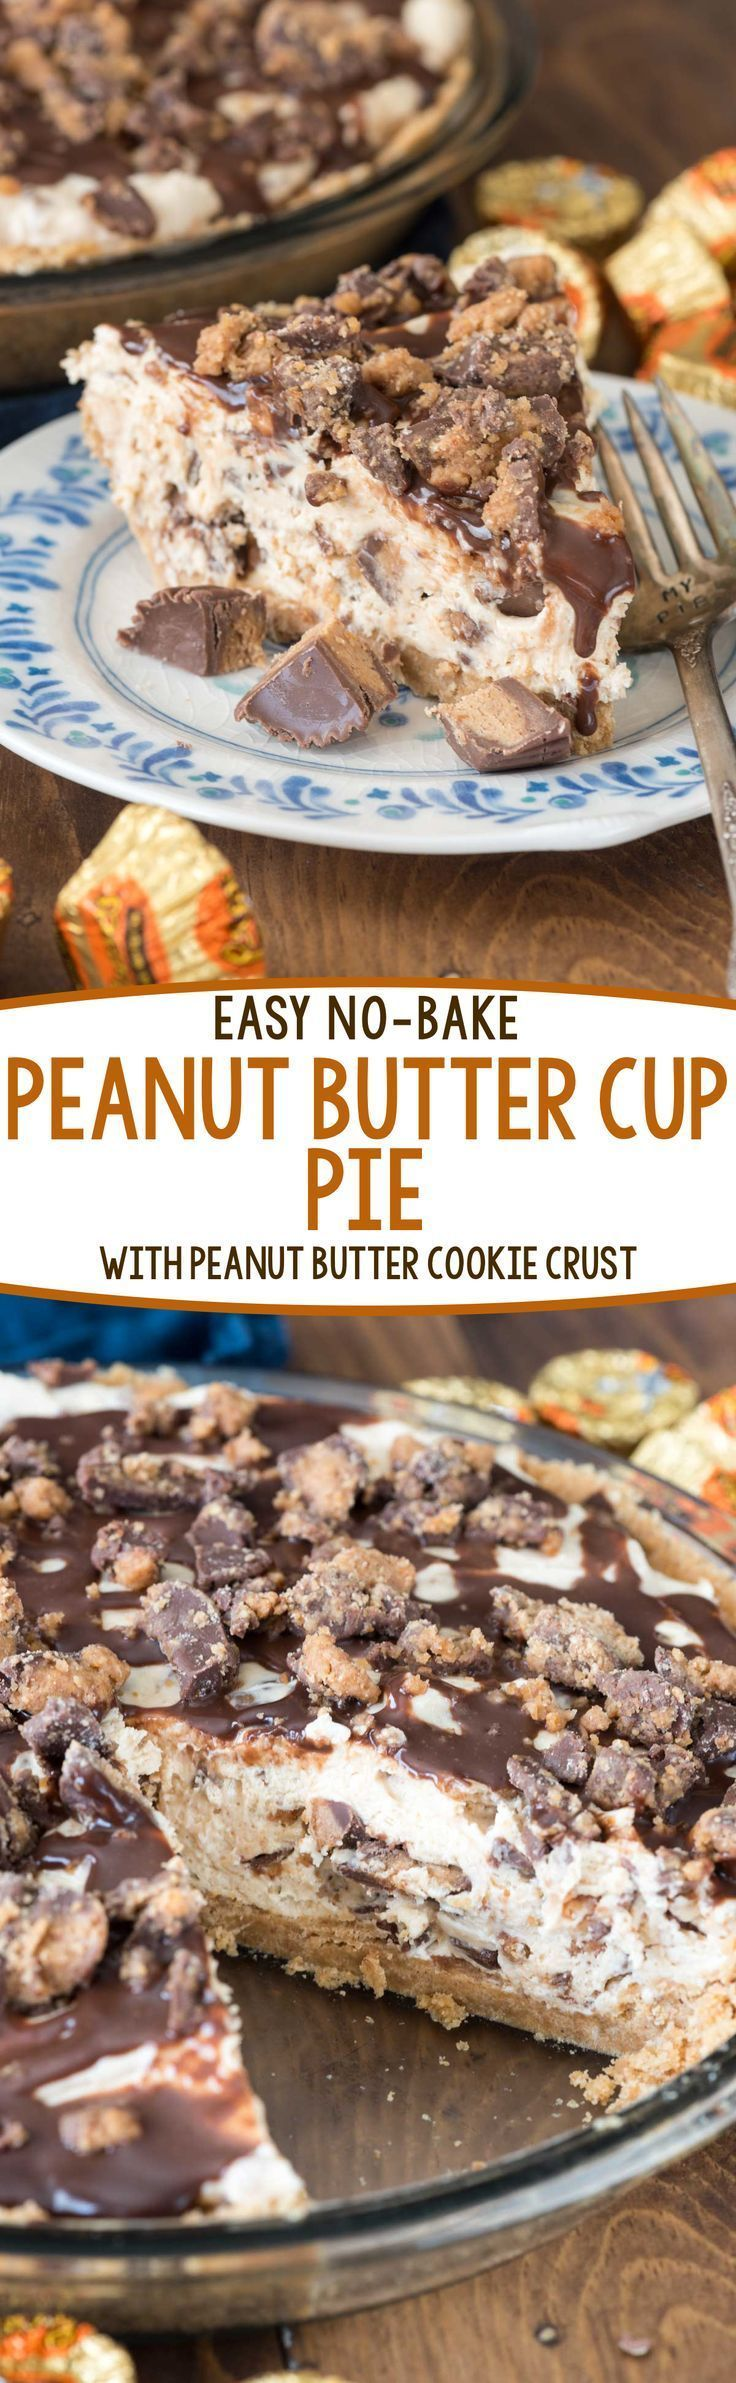 Easy No Bake Peanut Butter Cup Pie - this AMAZING pie recipe has a ...